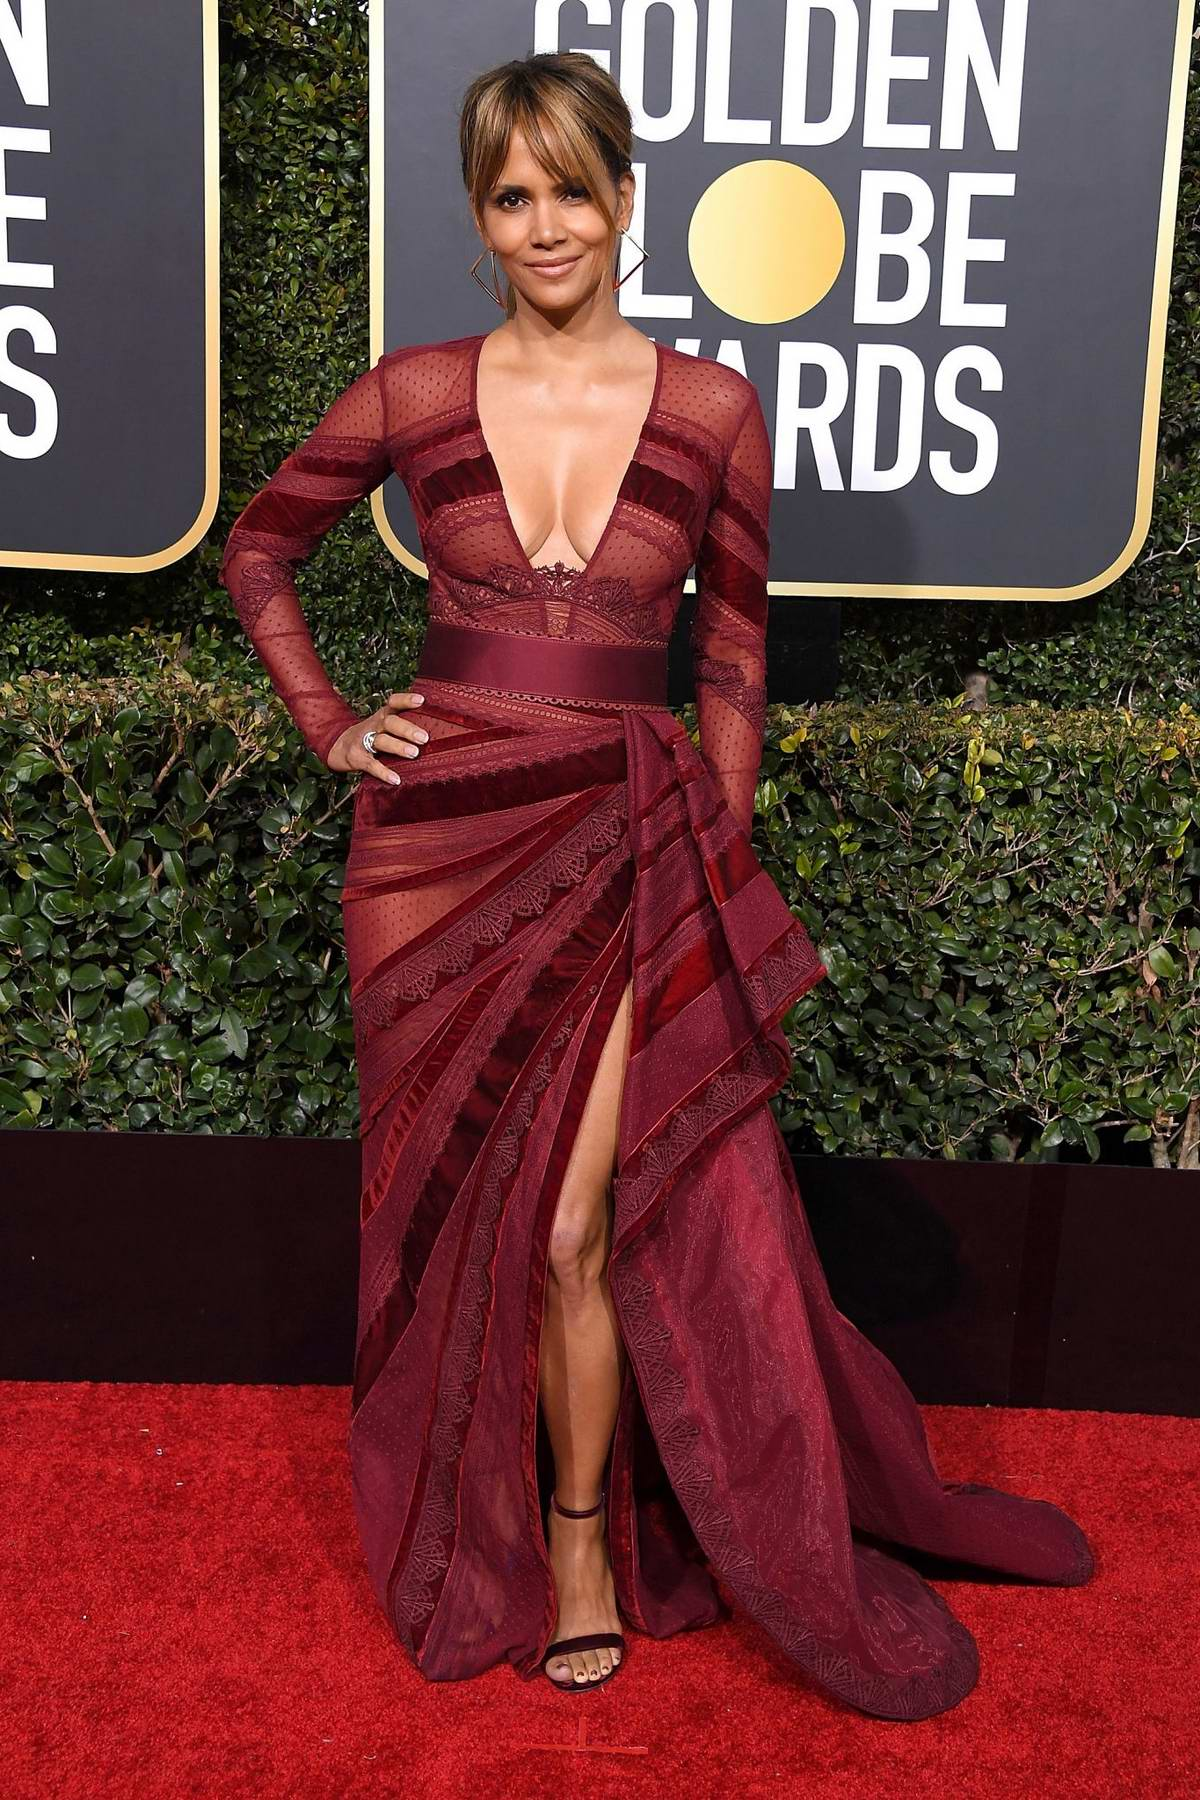 Halle Berry attends the 76th Annual Golden Globe Awards held at The Beverly Hilton Hotel in Los Angeles, California